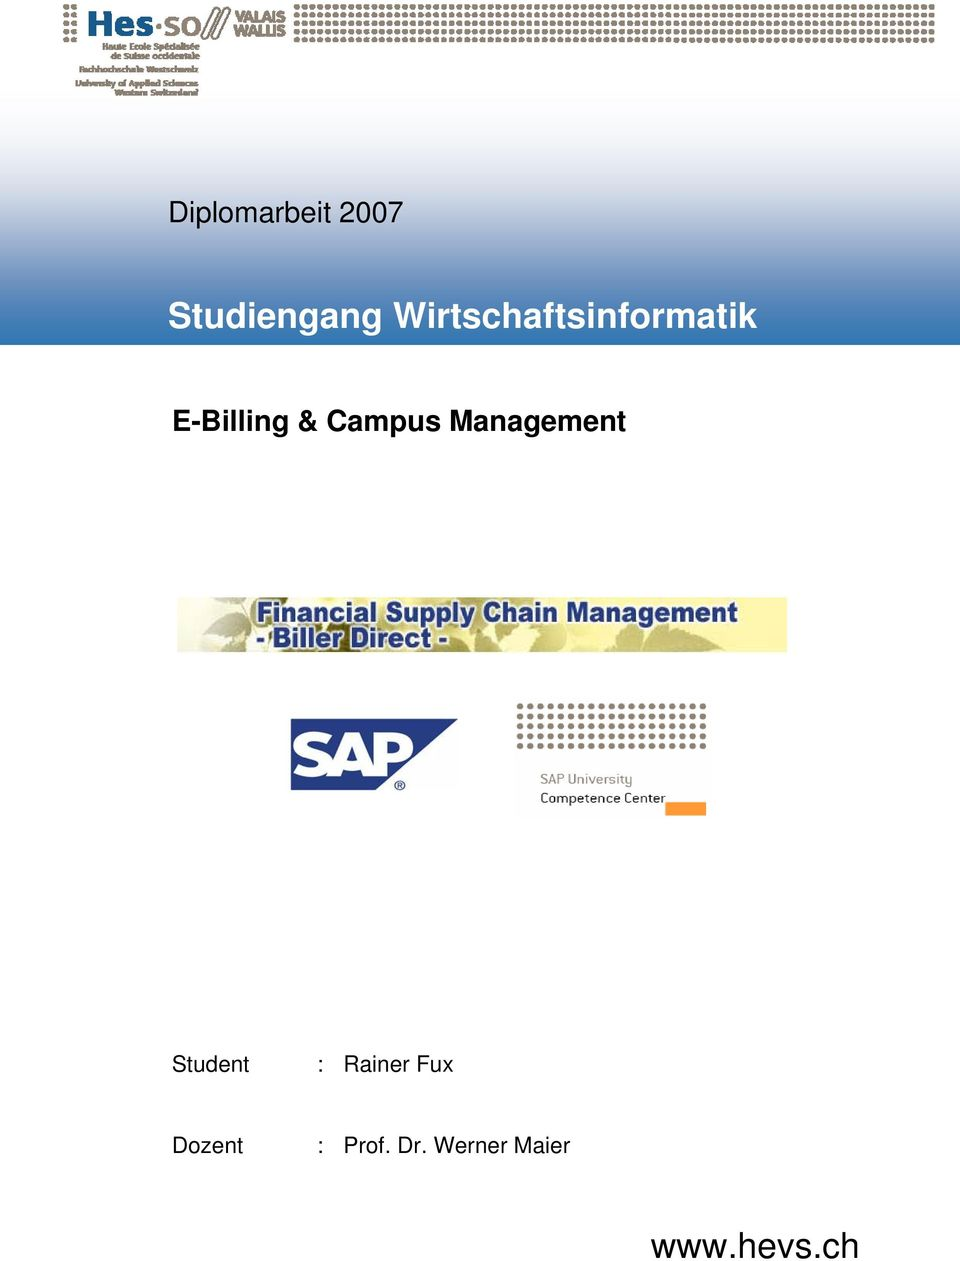 Campus Management Student : Rainer